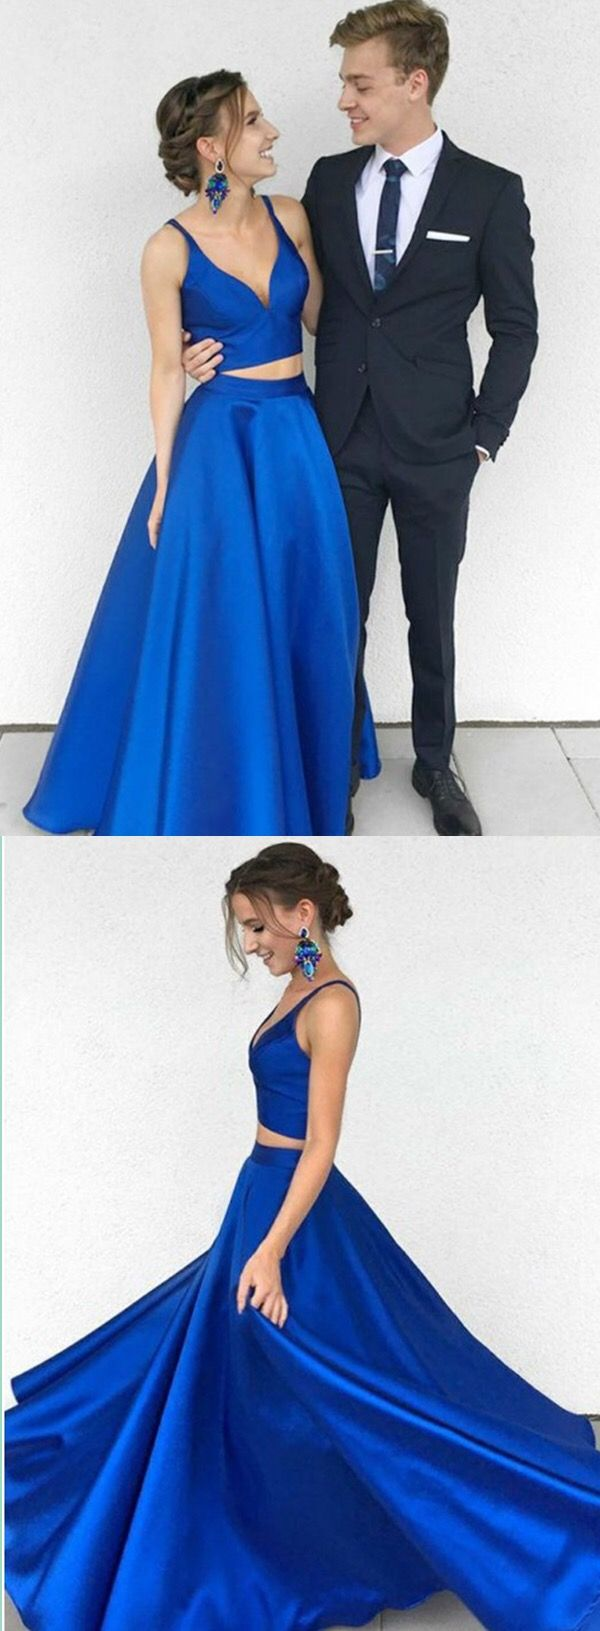 modest two piece royal blue prom dresses, elegant v neck satin party dresses, unique 2 piece evening dresses with pockets